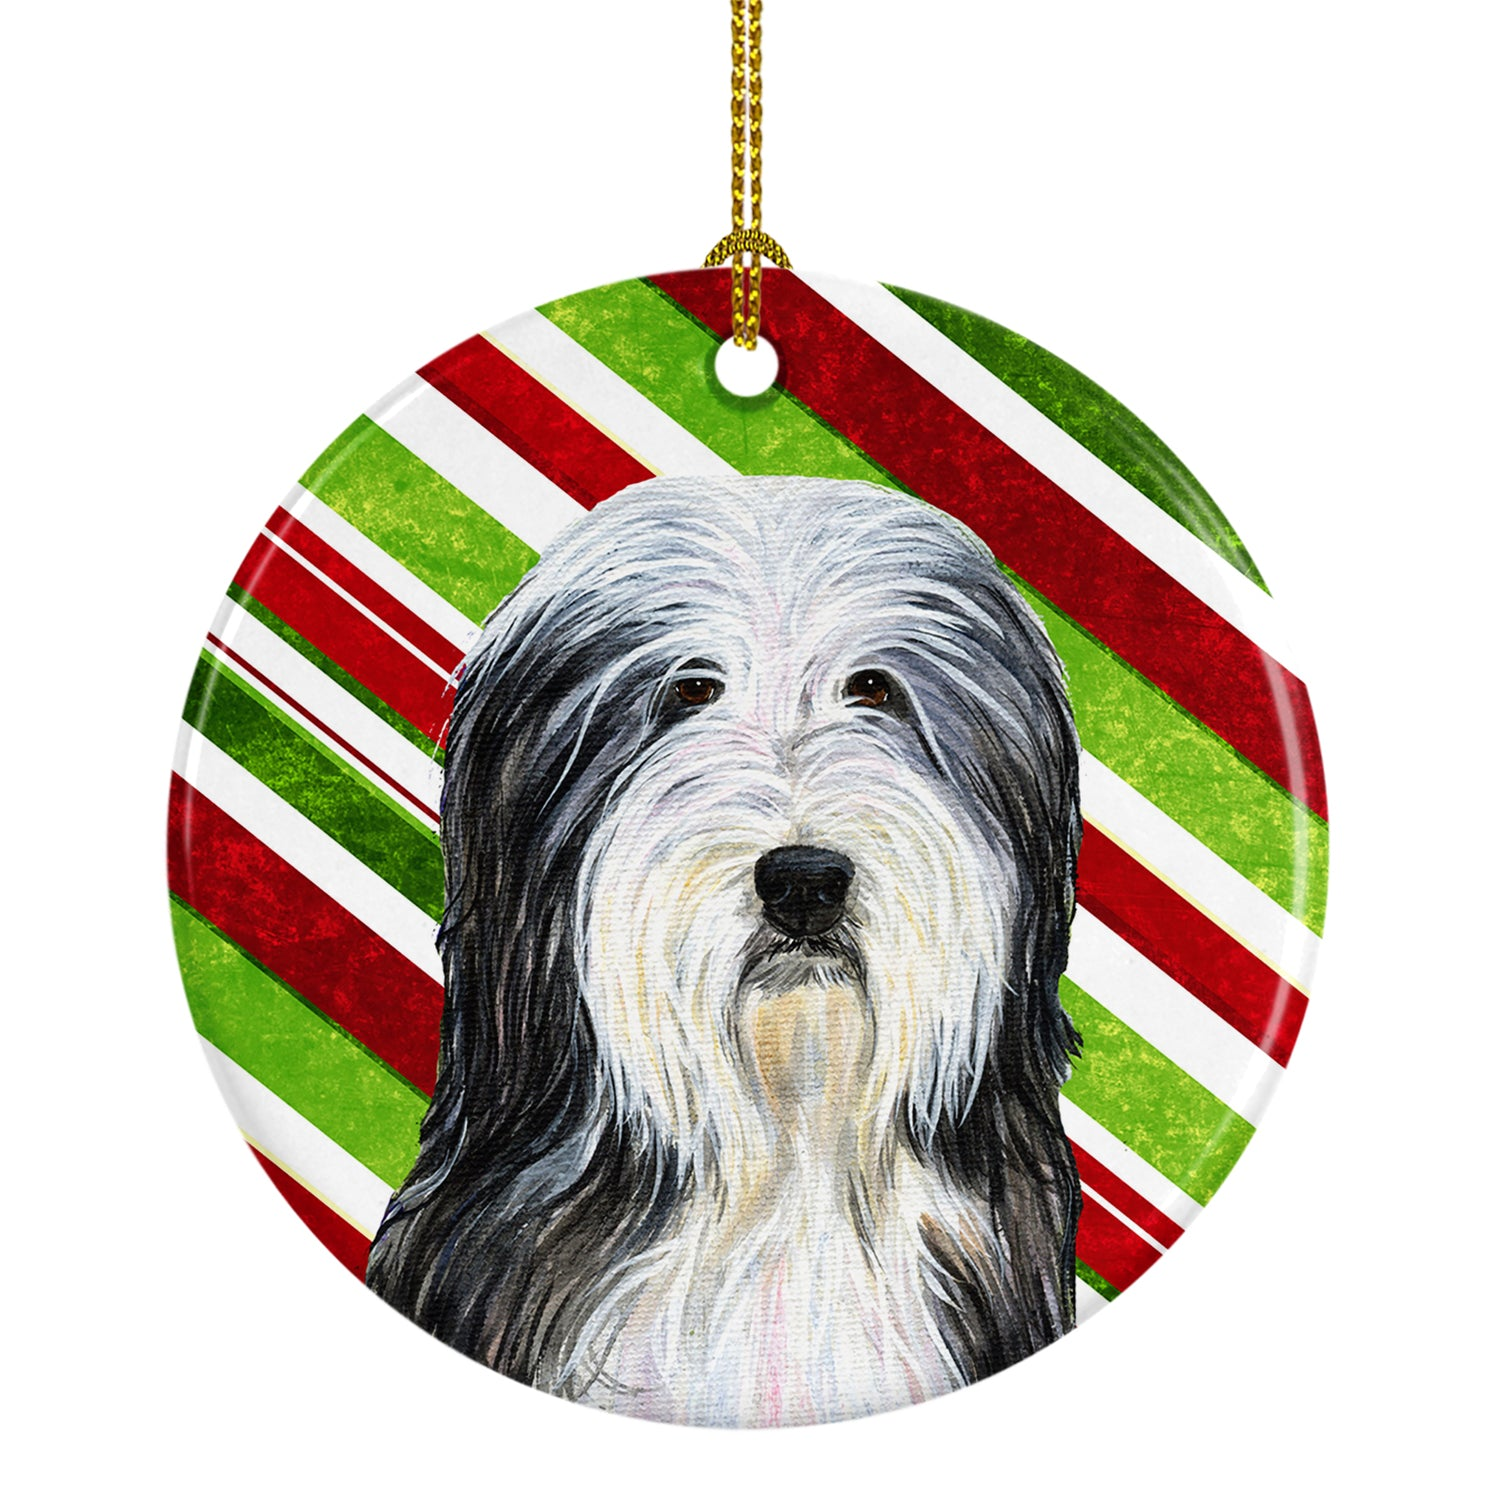 Bearded Collie Candy Cane Holiday Christmas Ceramic Ornament SS4566 by Caroline's Treasures